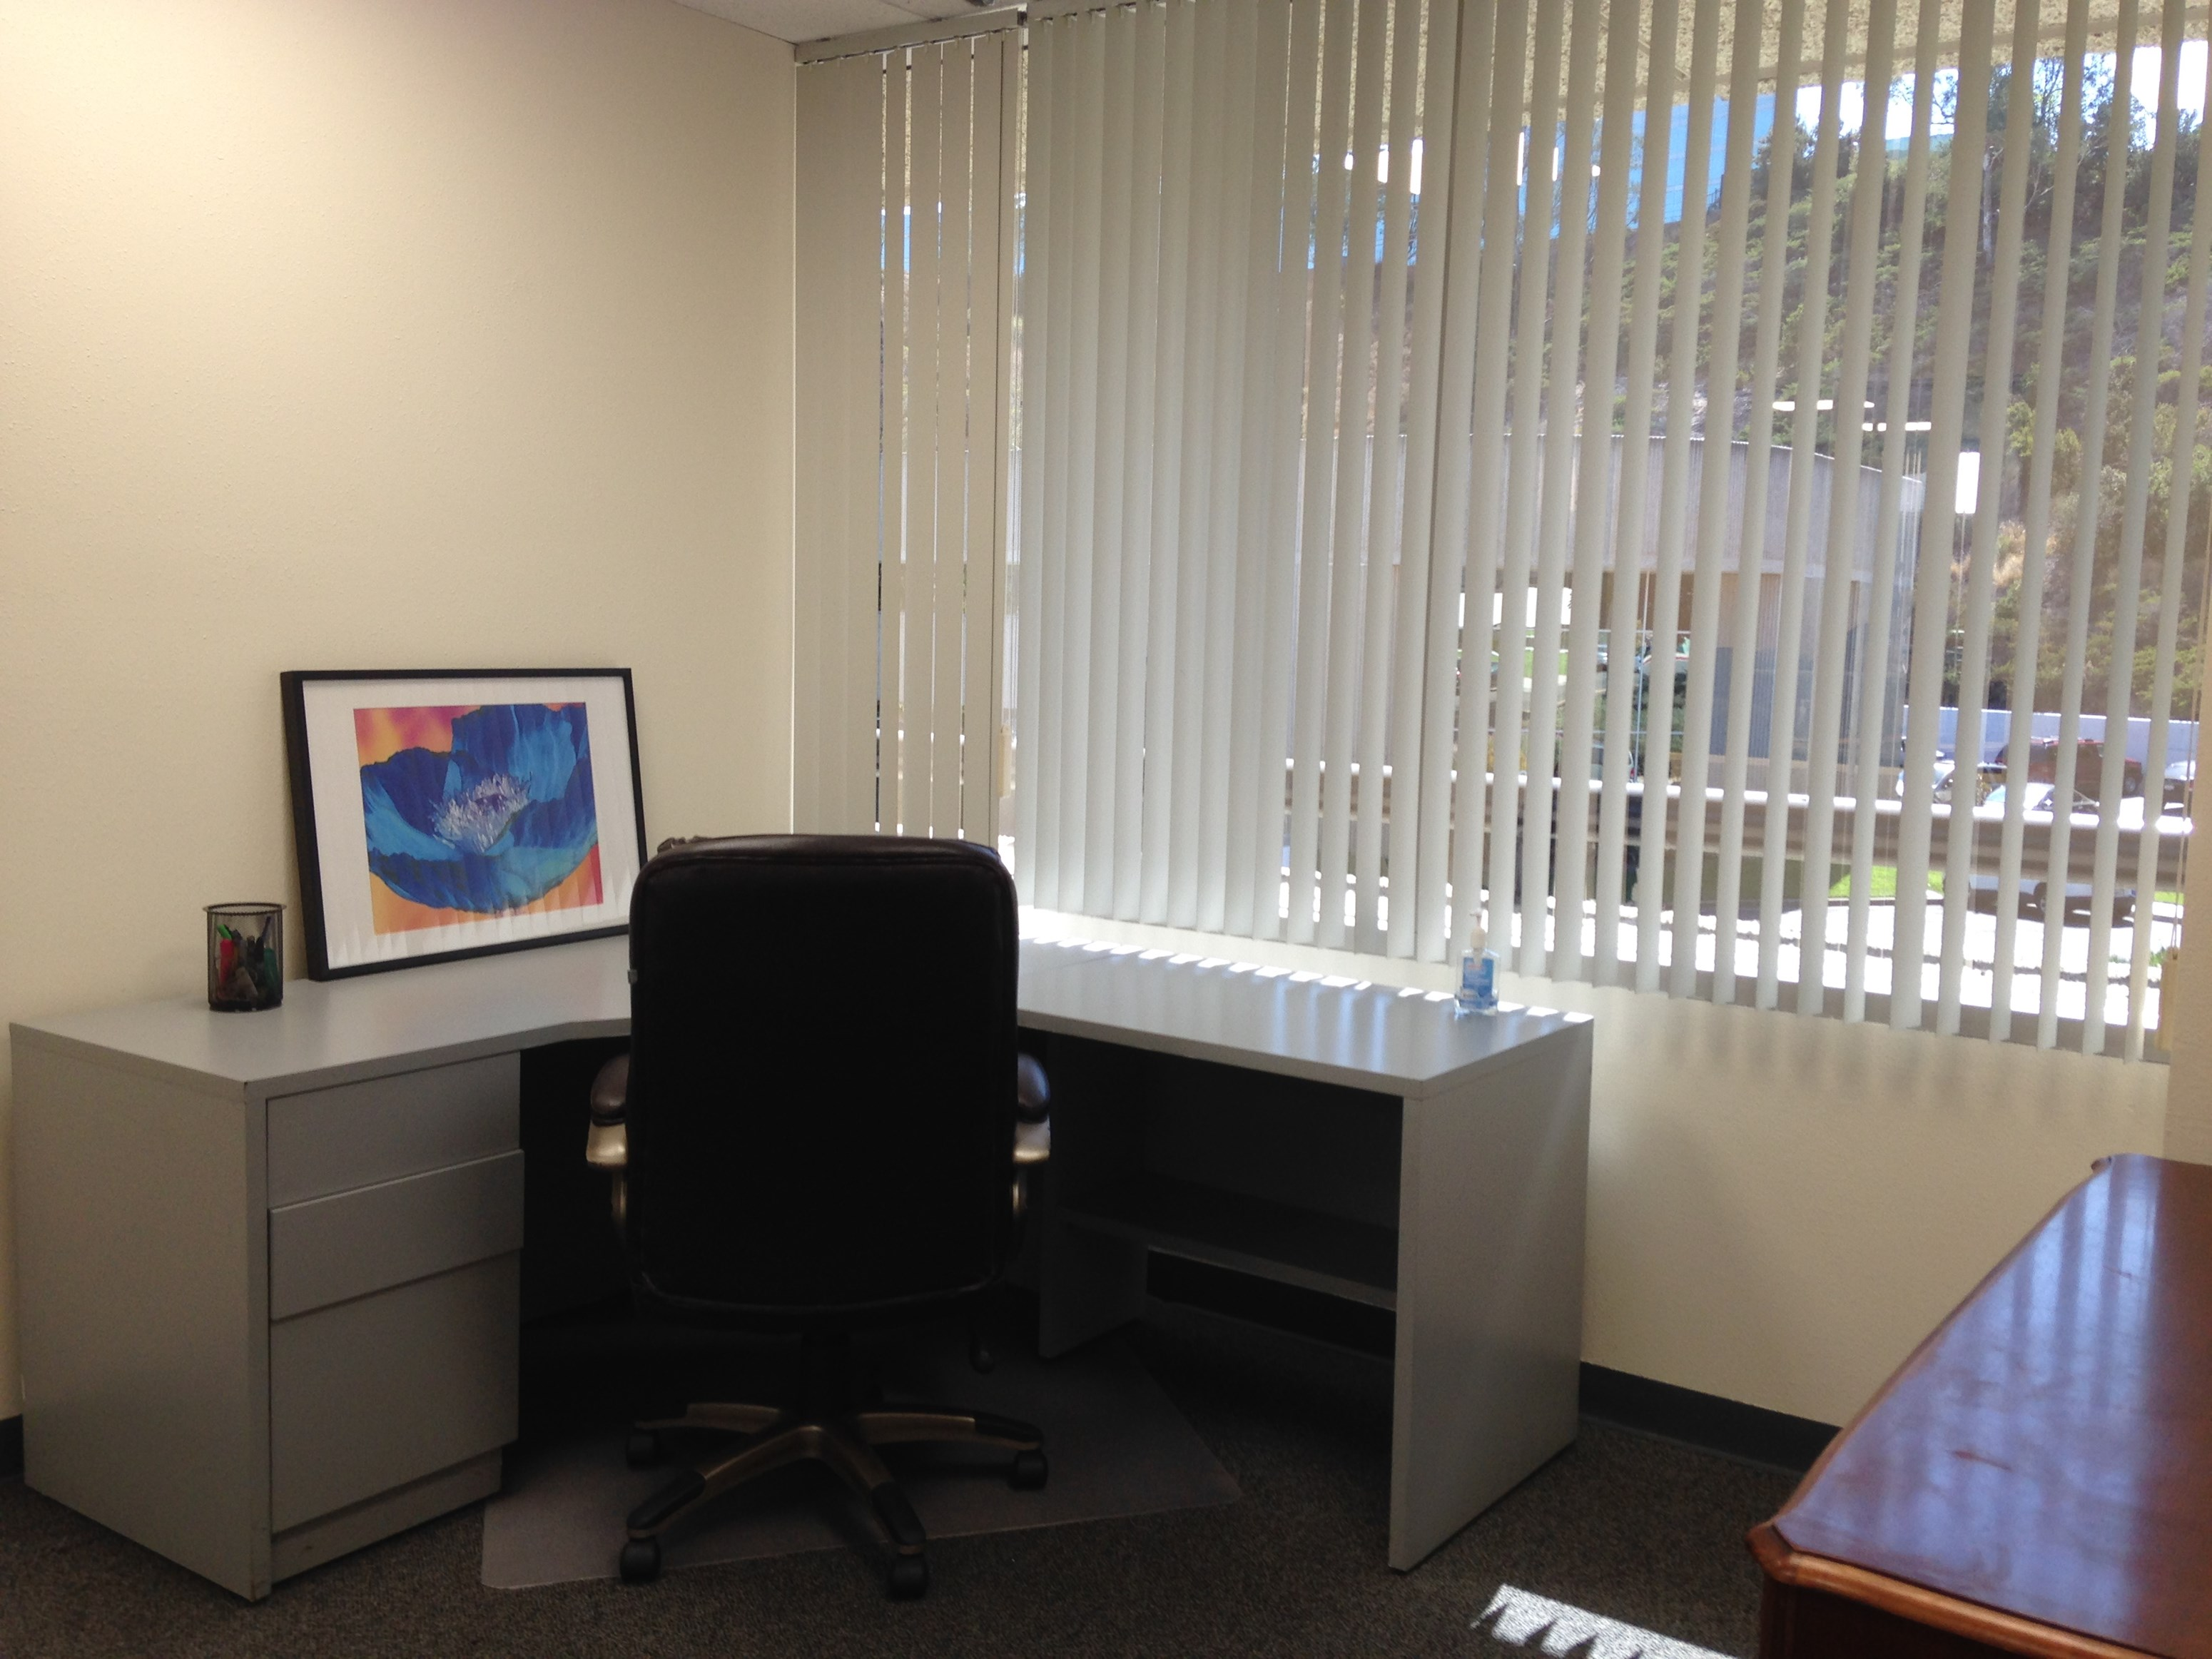 Office Space For Sublease  0 Bhk Commercial Space In San. What Is A Nuclear Technician. Aladdin Air Conditioning Boiler Companies Nyc. Get Free Insurance Quotes Best Trade Websites. Mira Mesa San Diego Ca Saas Payroll Providers. Allied Health Programs California. Home Depot Corporate Office Mailing Address. Learn Accounting Software Dummy Stock Trading. Rankings Of Law Schools Bay Insurance Brokers